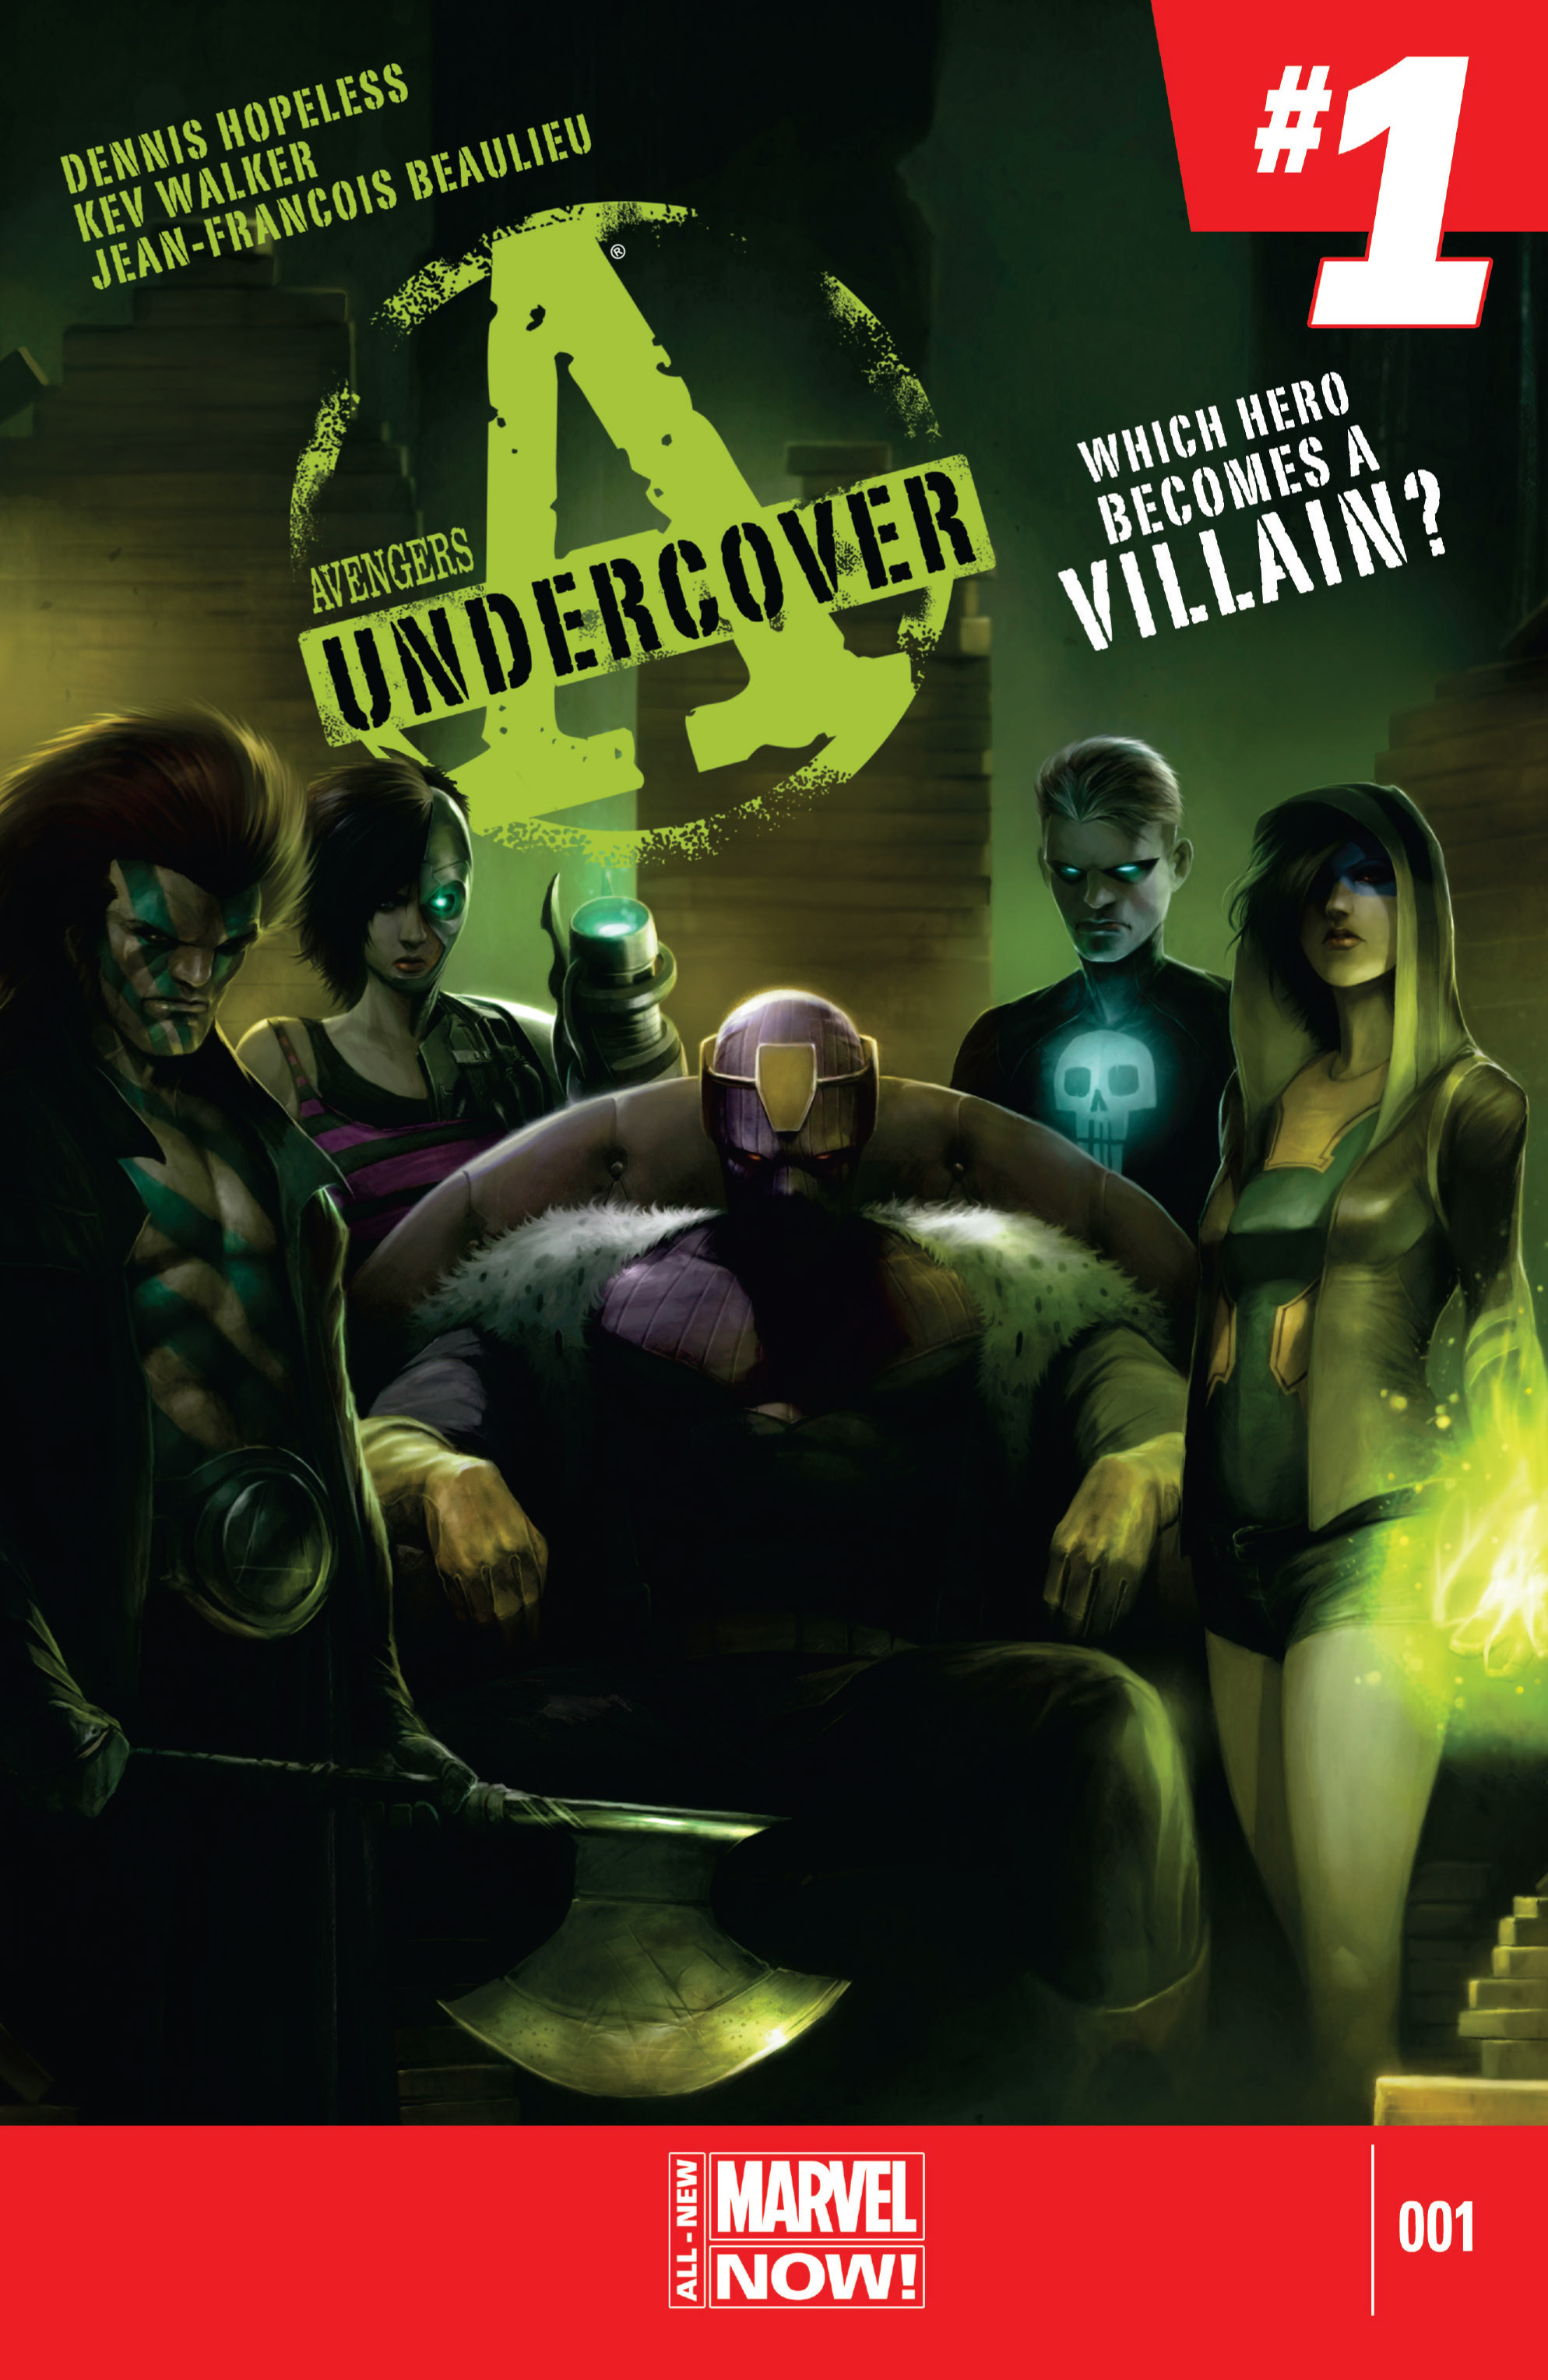 Read online Avengers Undercover comic -  Issue #1 - 1